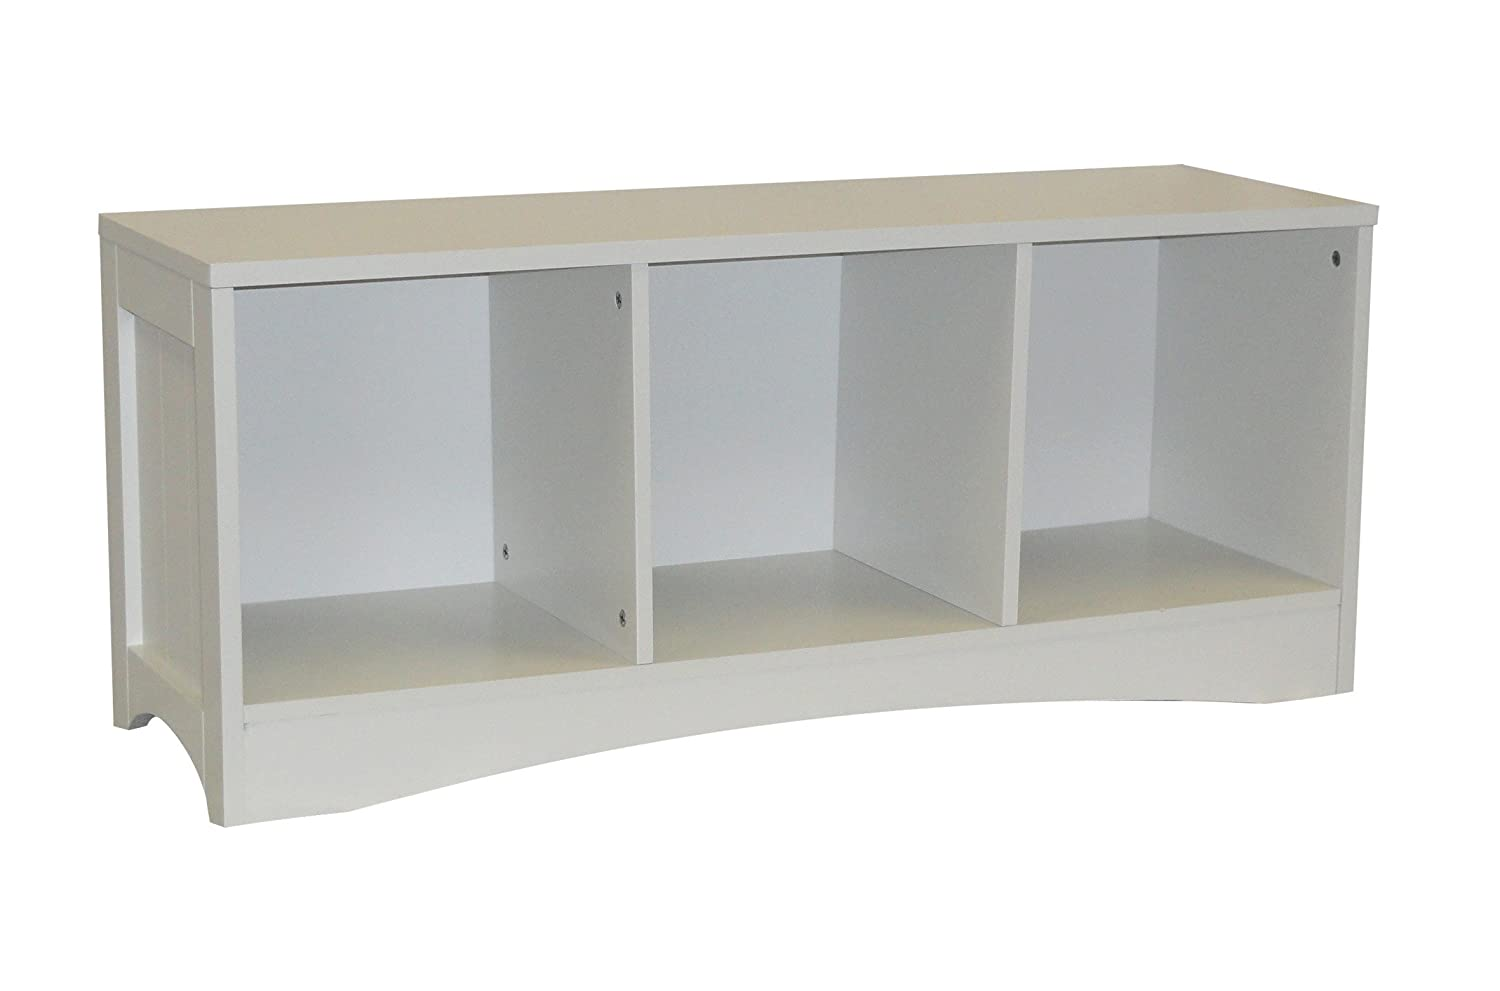 Riverridge Kids Bench With 3 Storage Cubbies In White Finish 02 023 New Ebay